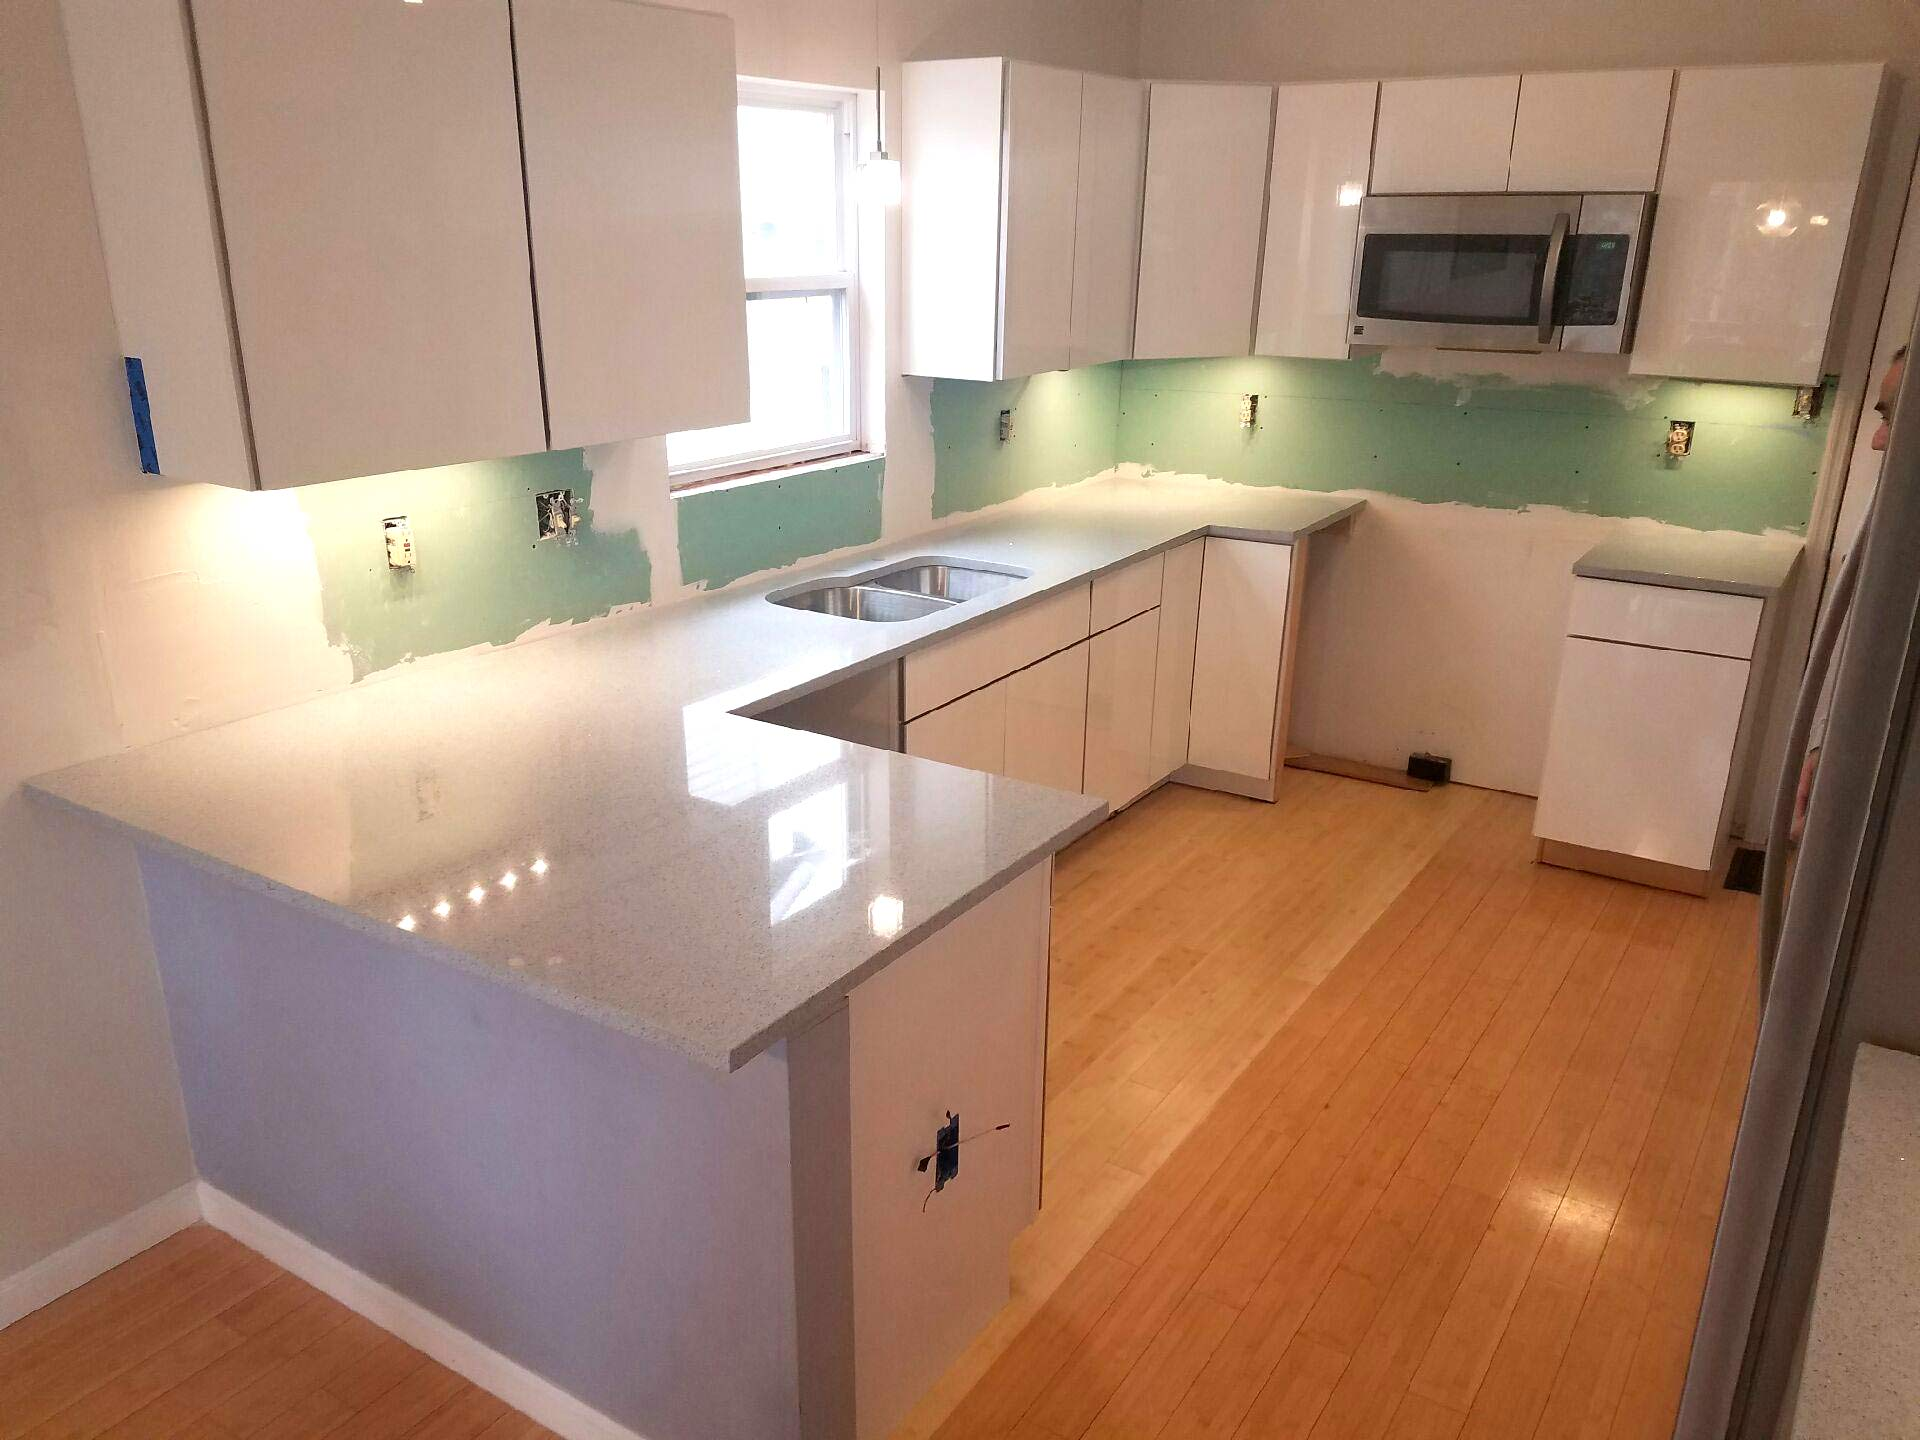 how to join quartz countertops